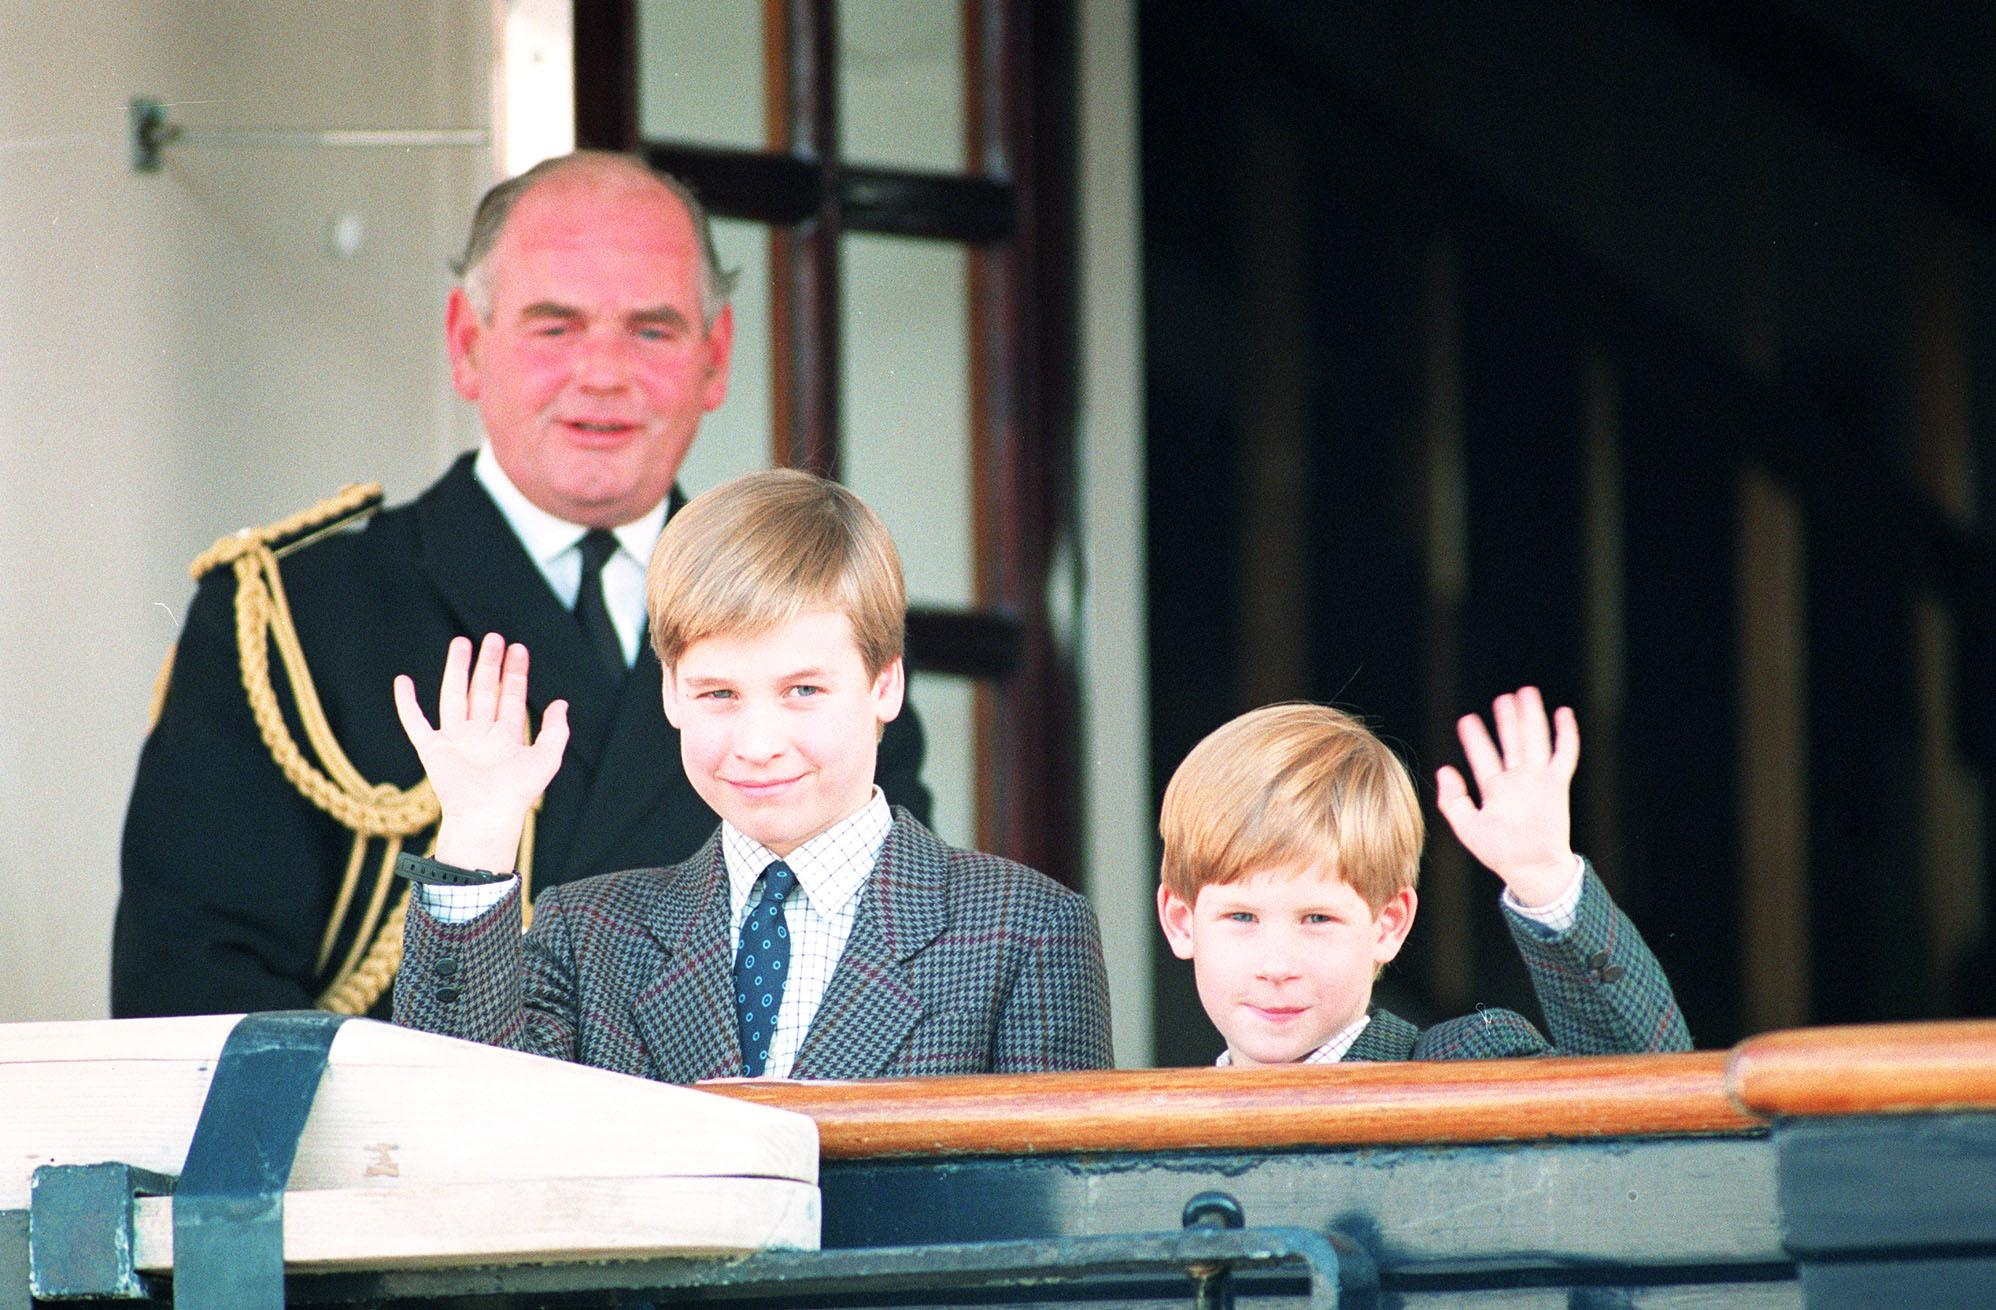 Prince William, 9, and his younger brother Prince Harry, 7, wave to photographers as they board the Royal Yacht Britannia moored on Lake Ontario alongside they Toronto waterfront. The two princes will be joind by their parents, the Prince and Princess of Wales, when they arrive in Canada for a week-long Royal visit.   (Photo by Martin Keene - PA Images/PA Images via Getty Images)